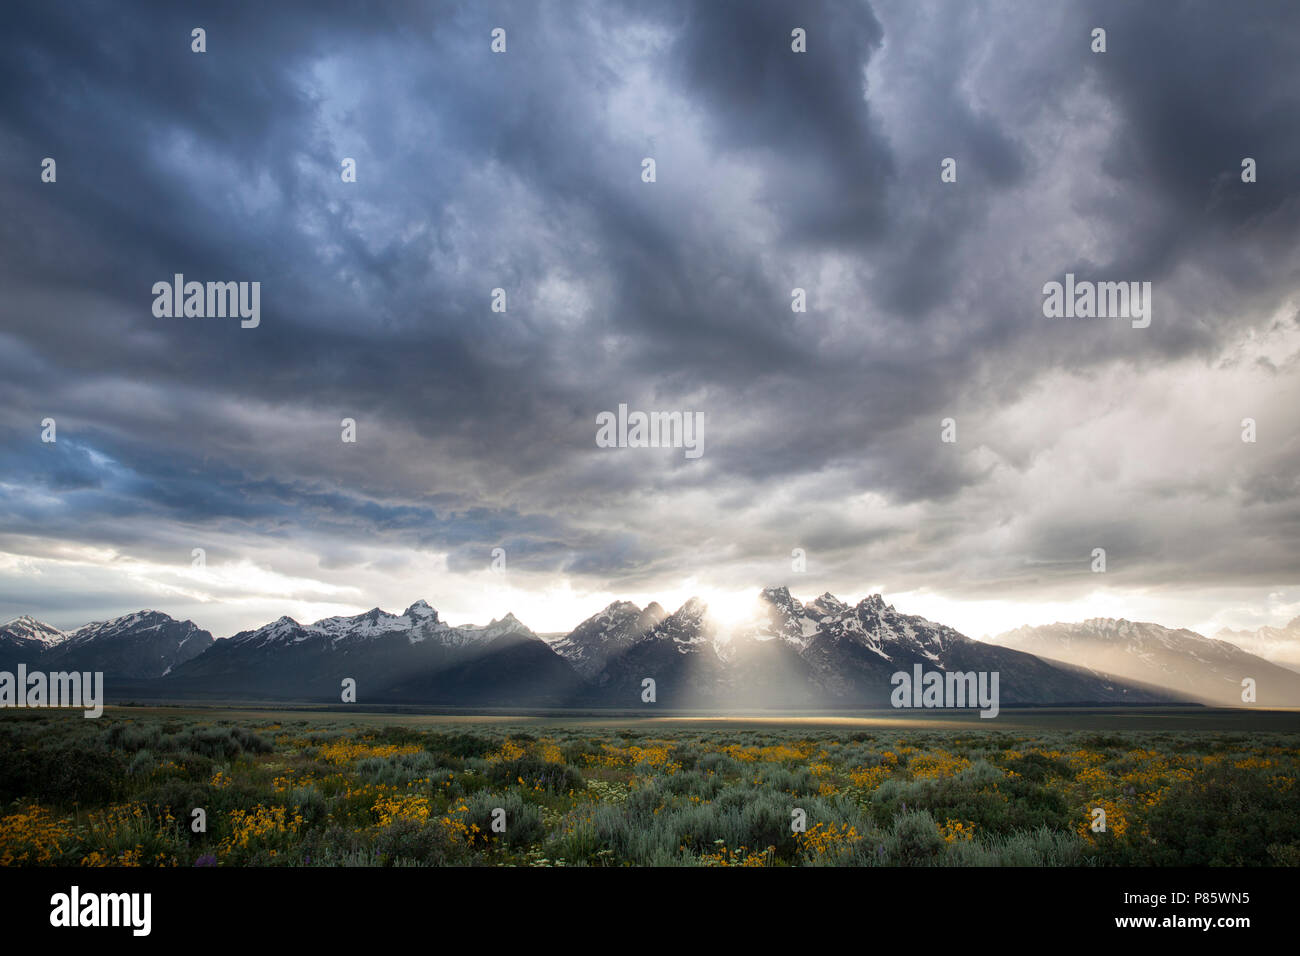 WY02758-00...WYOMING - Storm clouds over the Teton Range in Grand Teton National Park. - Stock Image